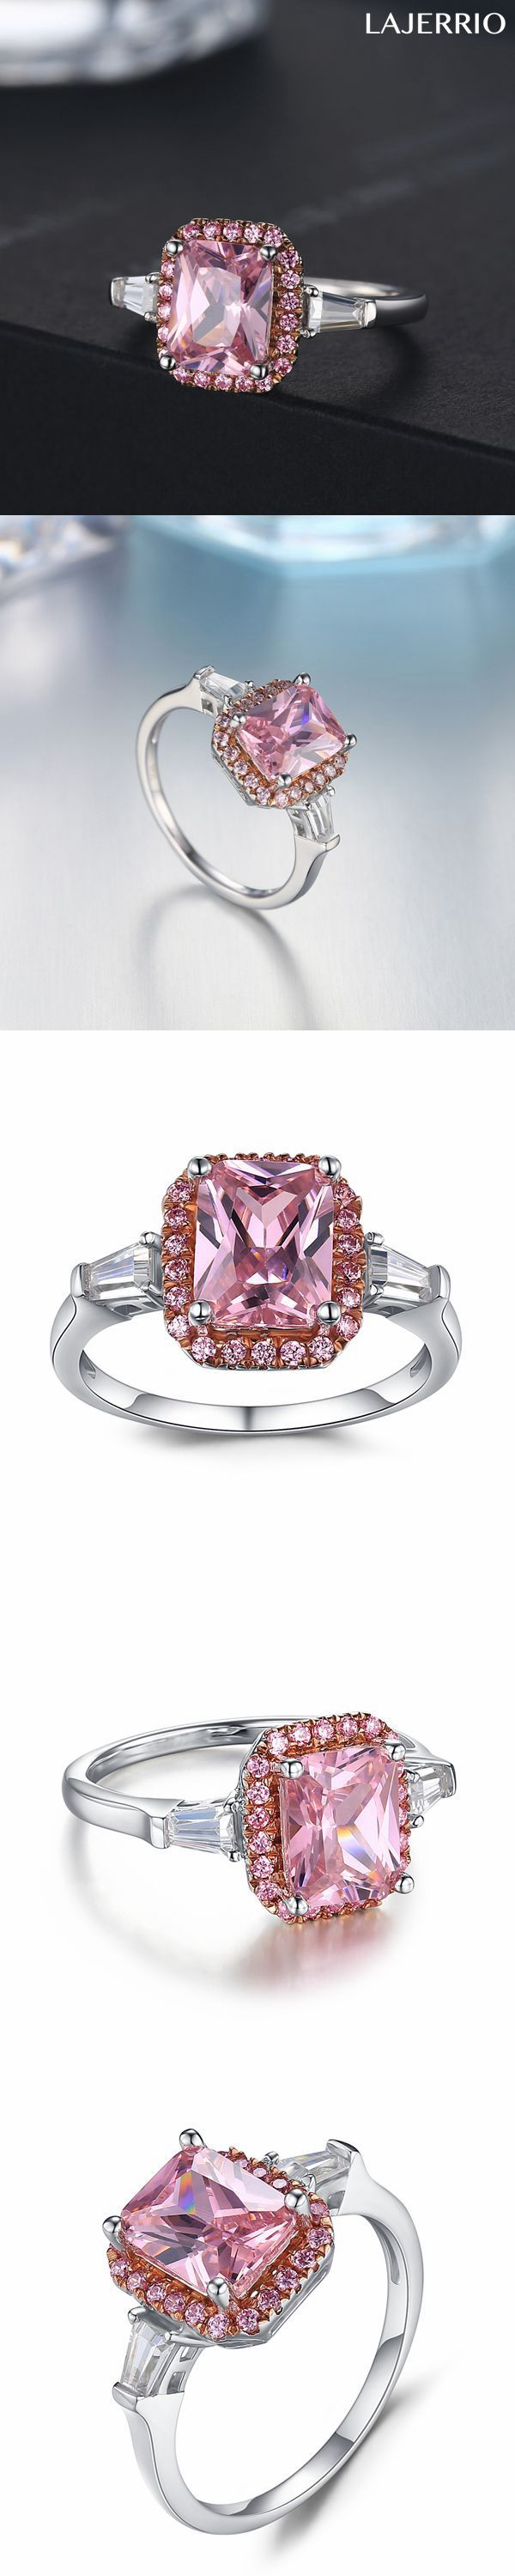 Lajerrio Jewelry Radiant Cut Pink Sapphire S925 Engagement Ring